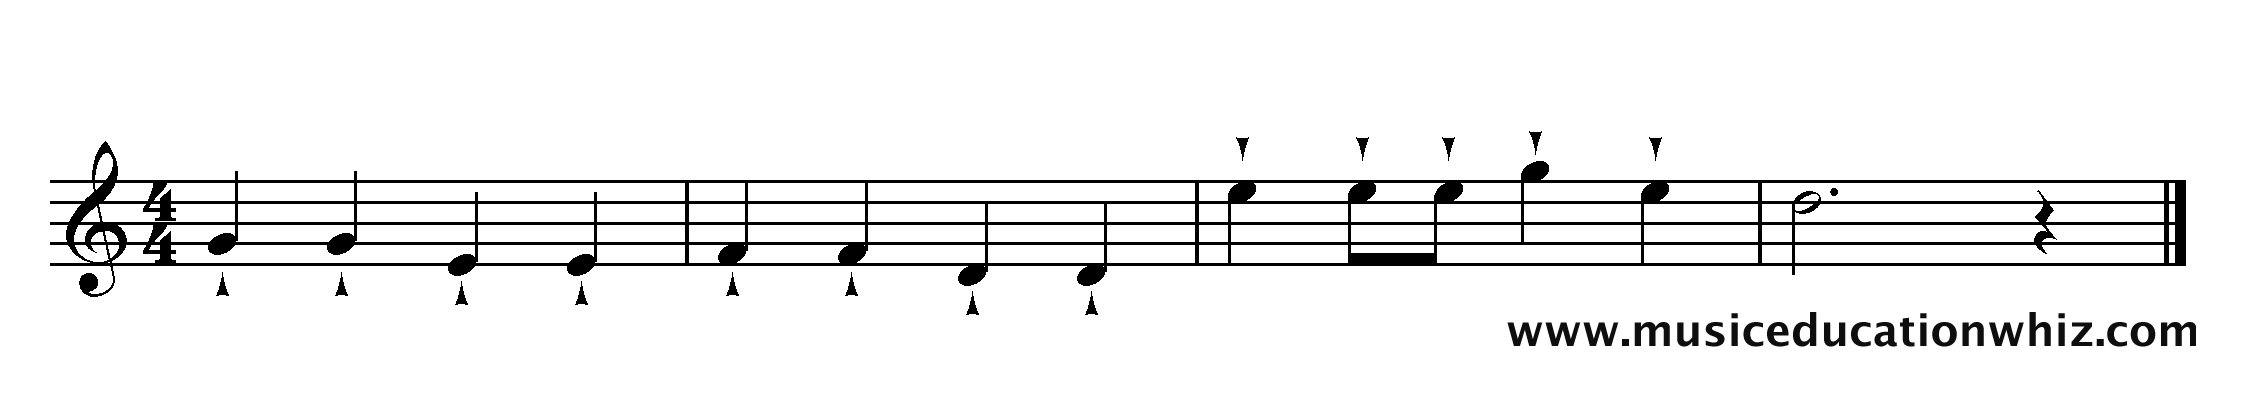 The music for 'Mary Mary Quite Contrary' with staccatissimo markings.